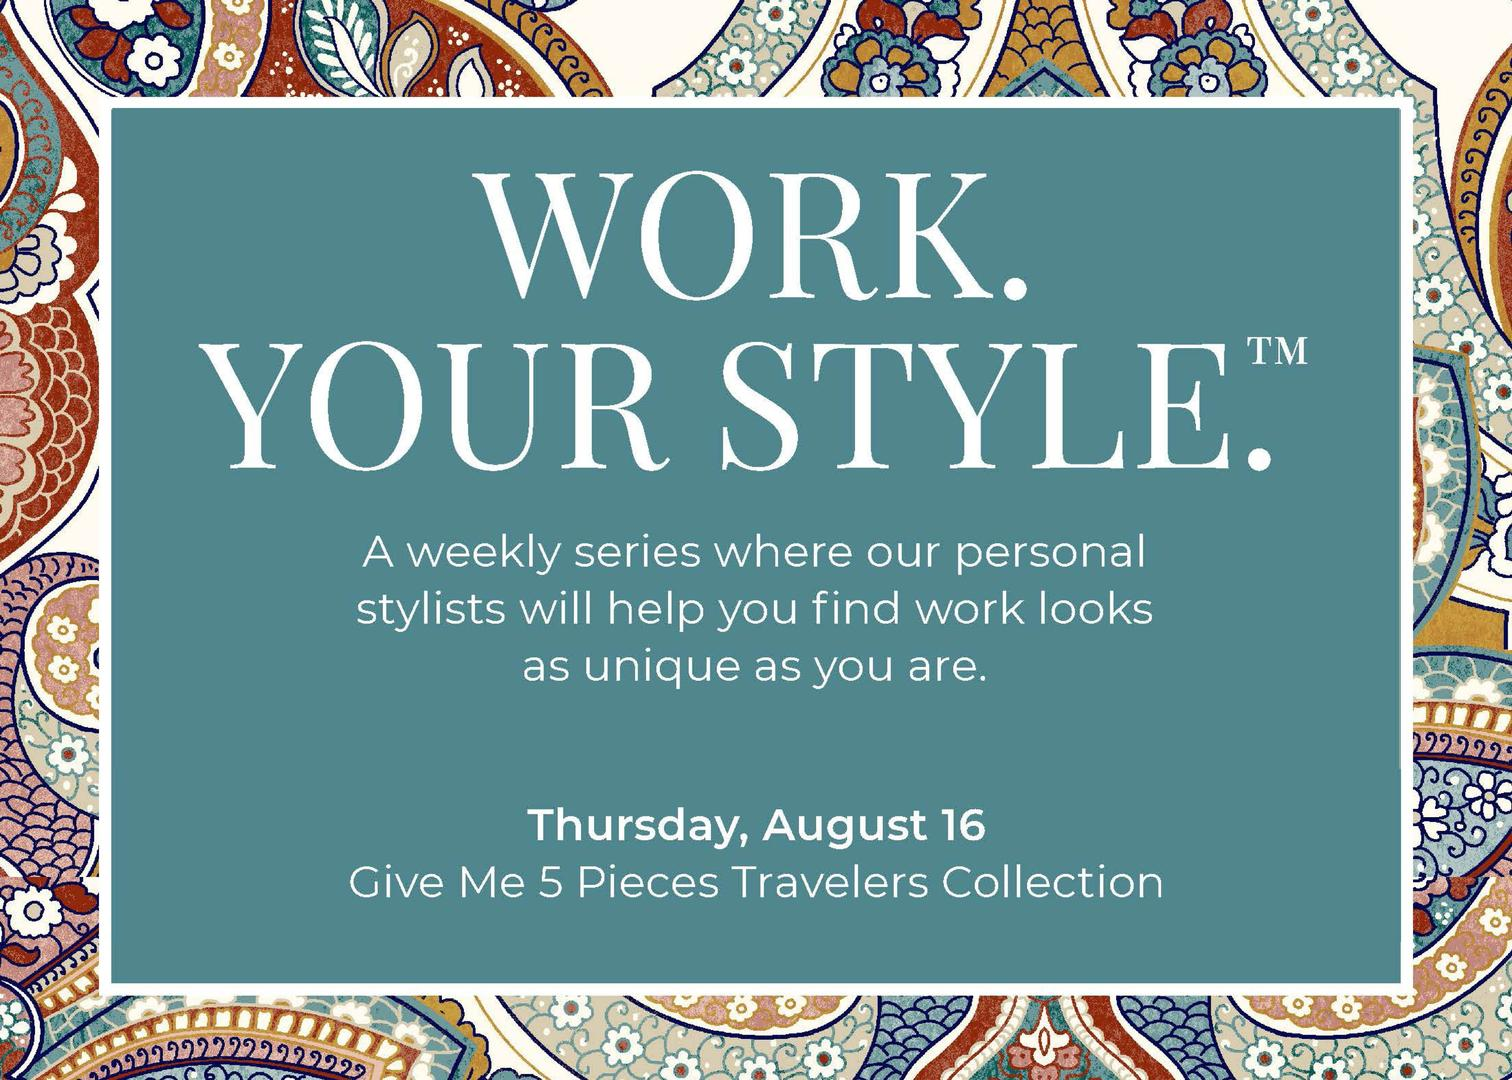 Augusta Mall, Work You Style- Give Me 5 Pieces Travelers Collection  Event Image: 3450 Wrightsboro Rd., Ste A230, Augusta, GA 30909, US